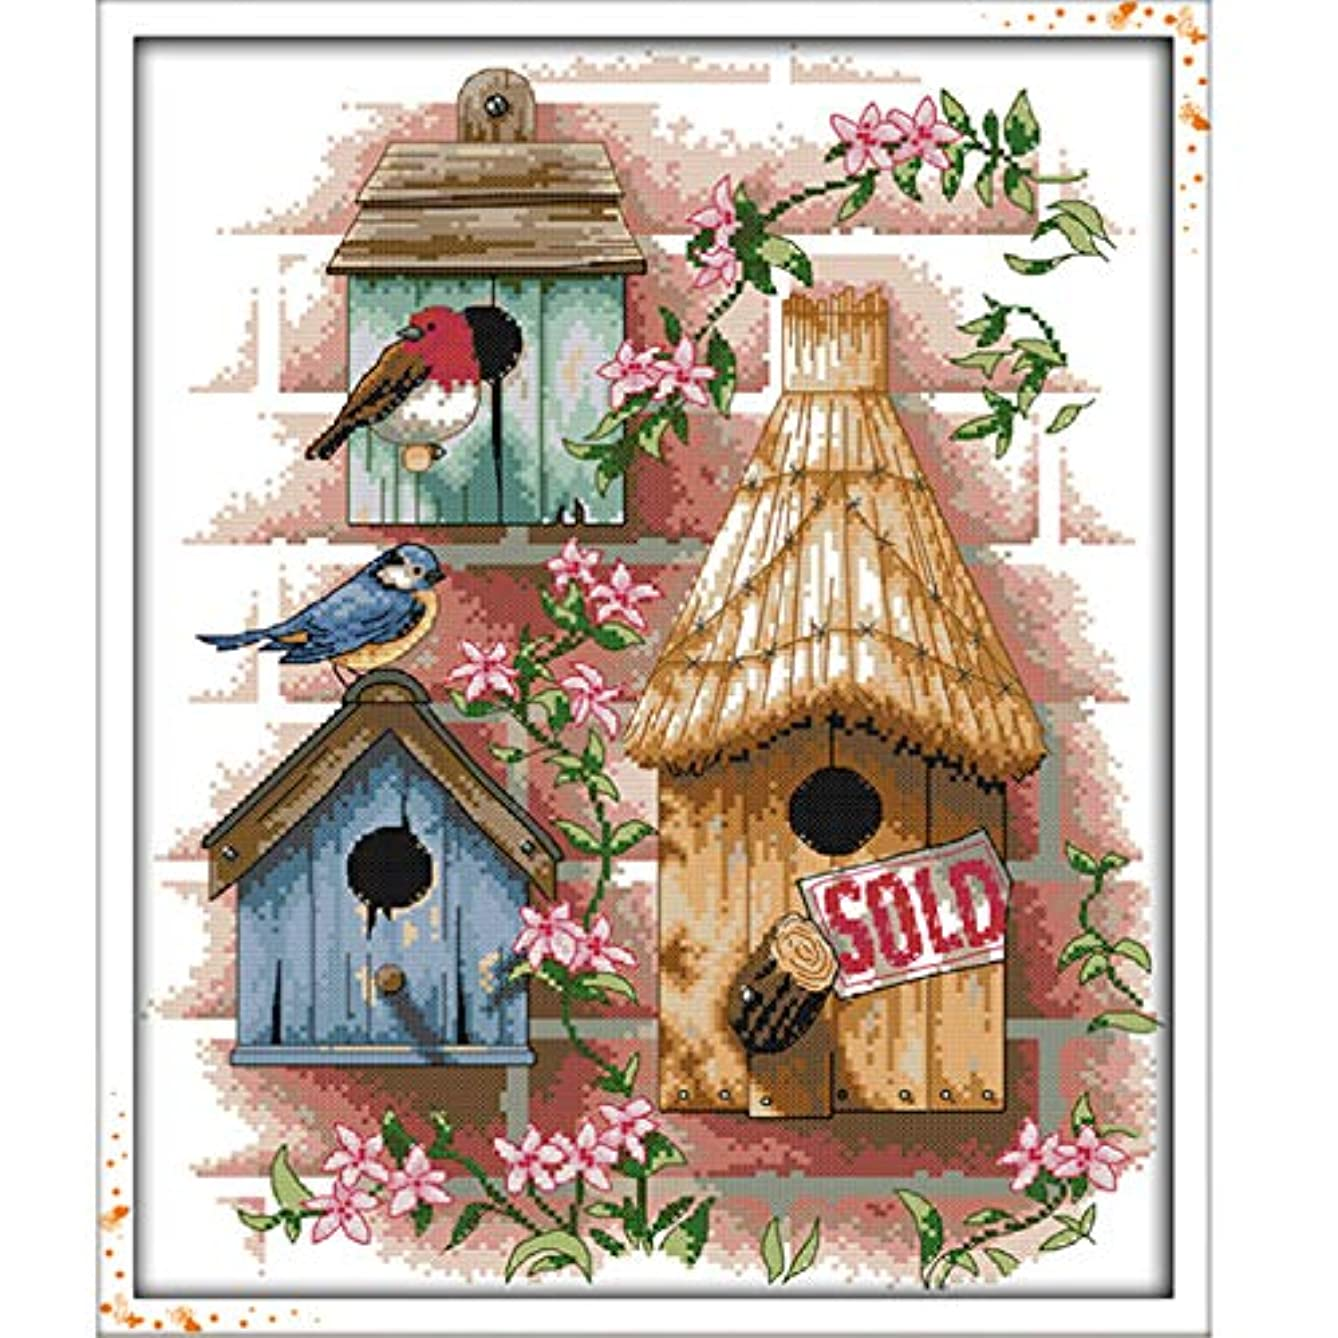 Stamped Cross Stitch Kits - Counted Cross Stitch Kit, Cross-Stitching Patterns Log Cabin 11CT Pre-Printed Fabric - DIY Art Crafts & Sewing Needlepoints Kit for Home Decor 17''x21''